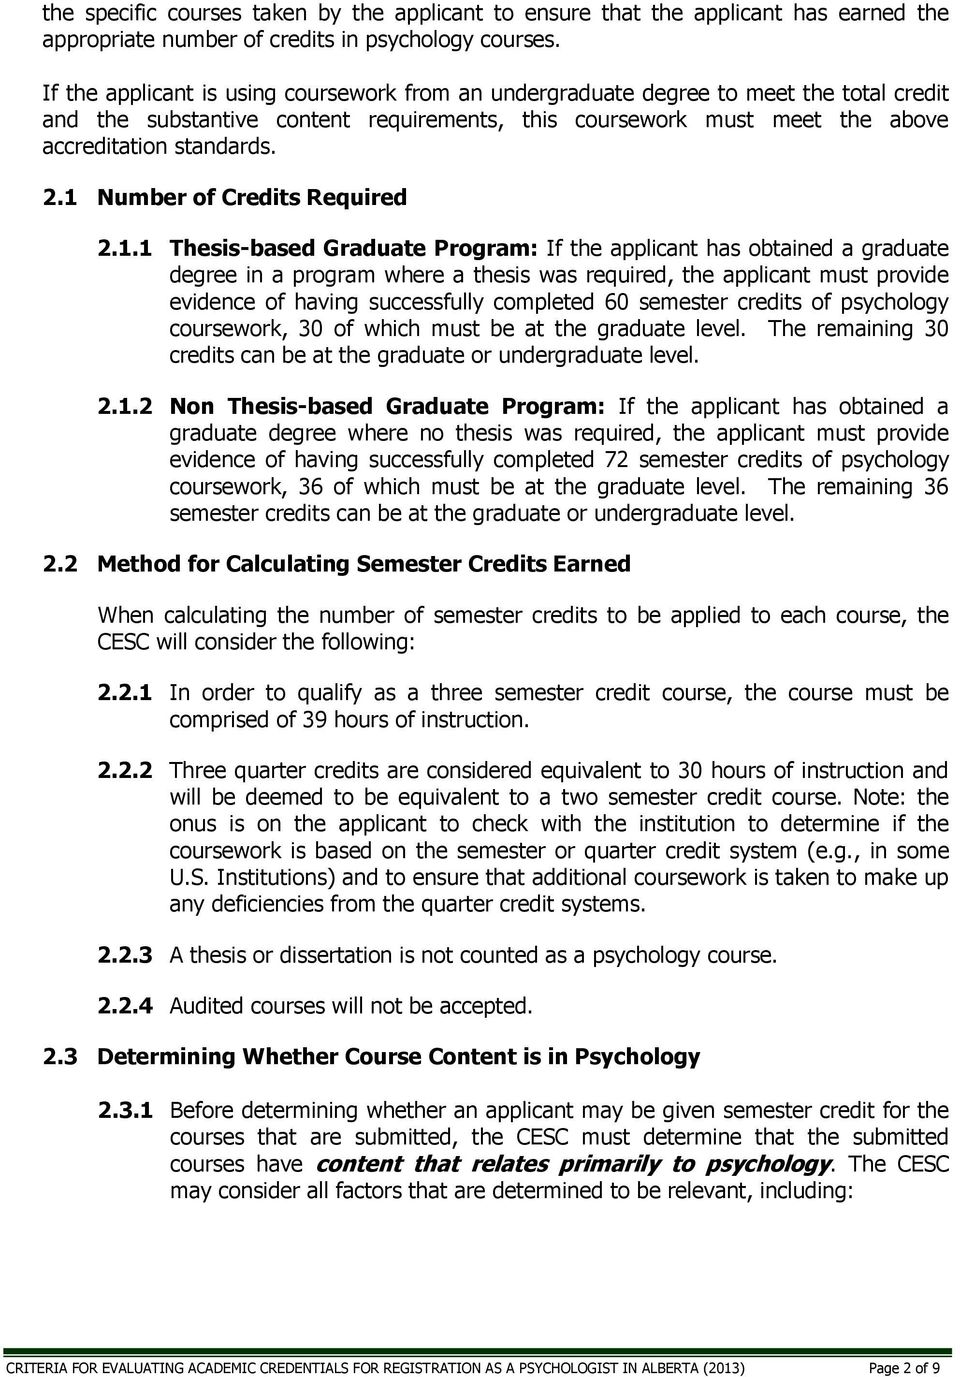 1 Number of Credits Required 2.1.1 Thesis-based Graduate Program: If the applicant has obtained a graduate degree in a program where a thesis was required, the applicant must provide evidence of